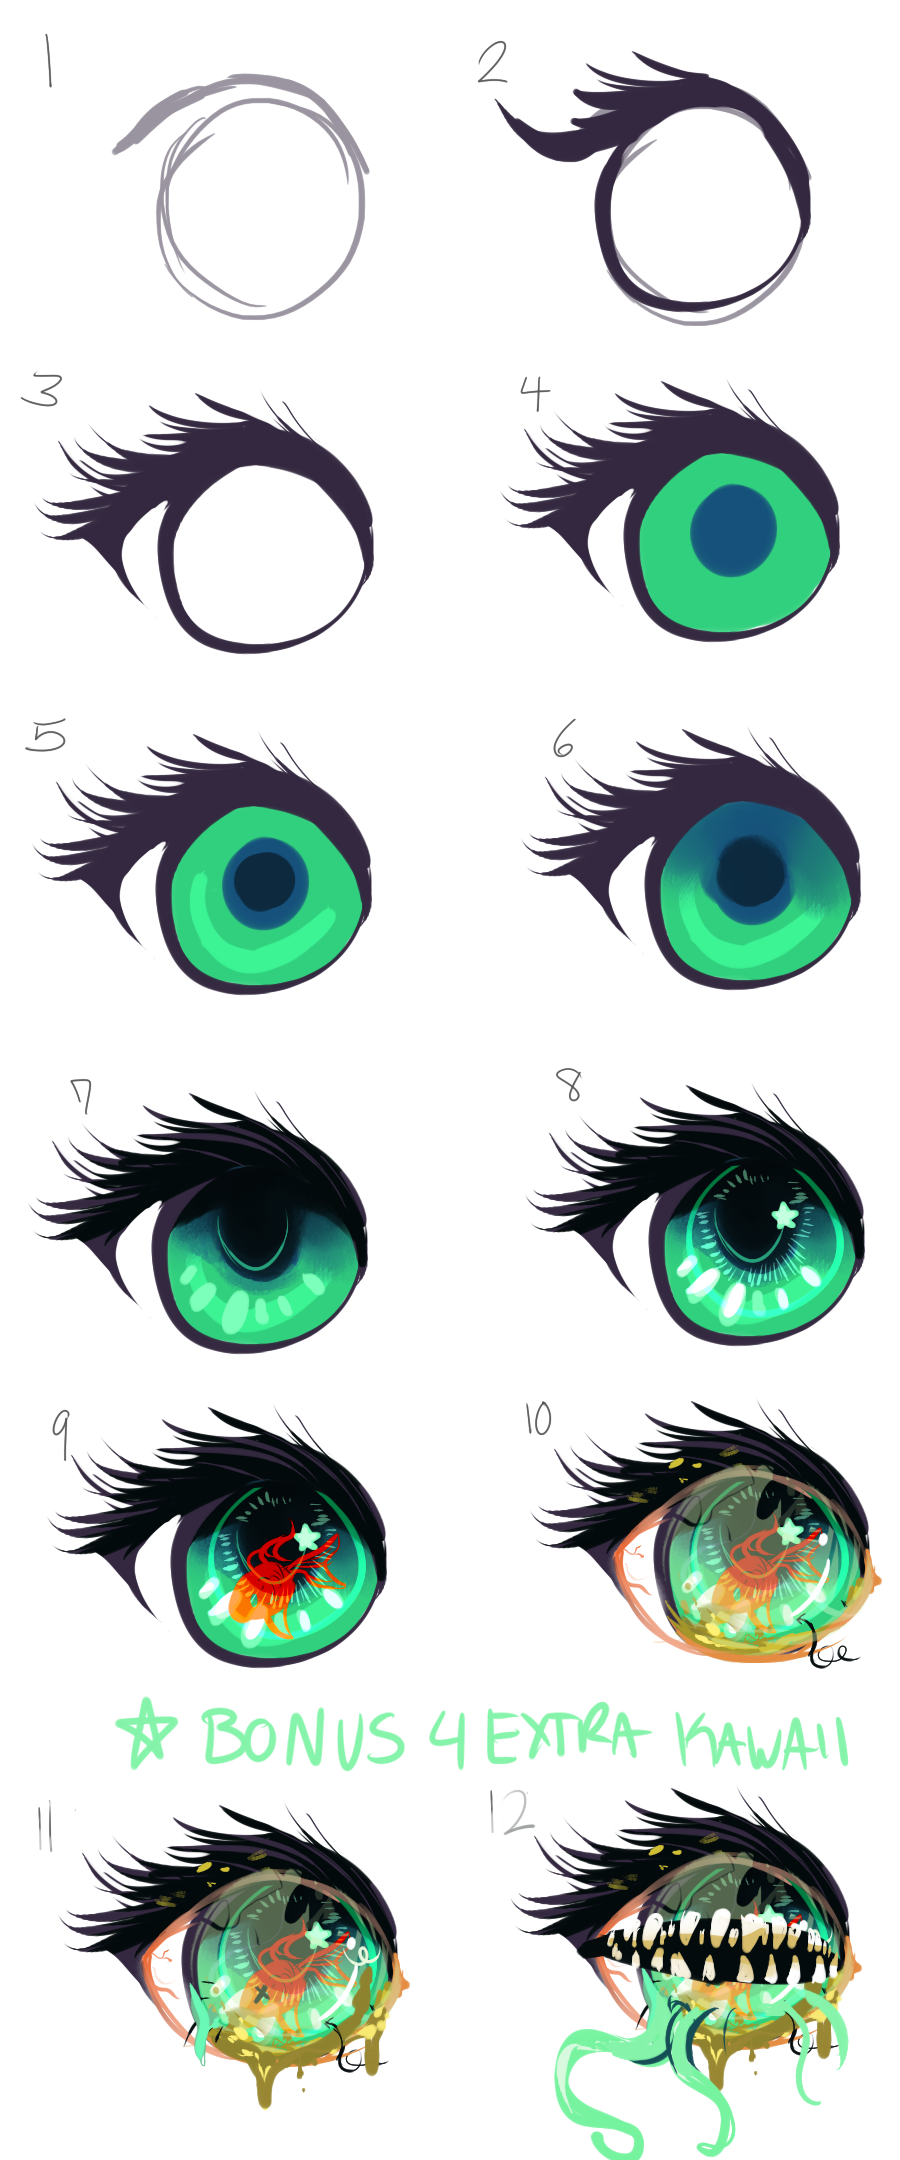 Anime eye process by avibroso on deviantart anime eye process by avibroso anime eye process by avibroso ccuart Gallery